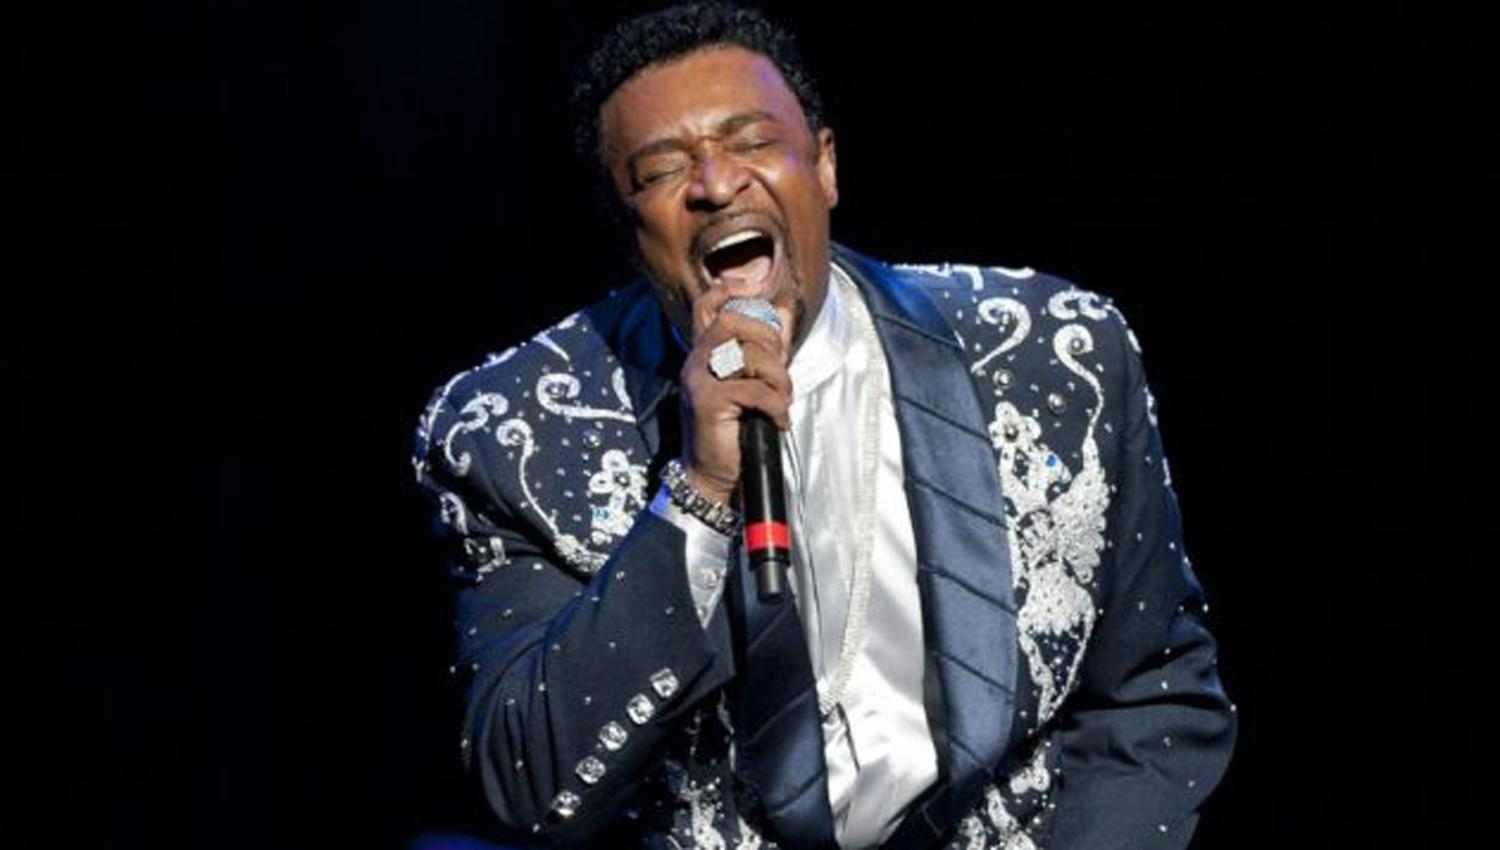 Fallece Dennis Edwards, vocalista de The Temptations